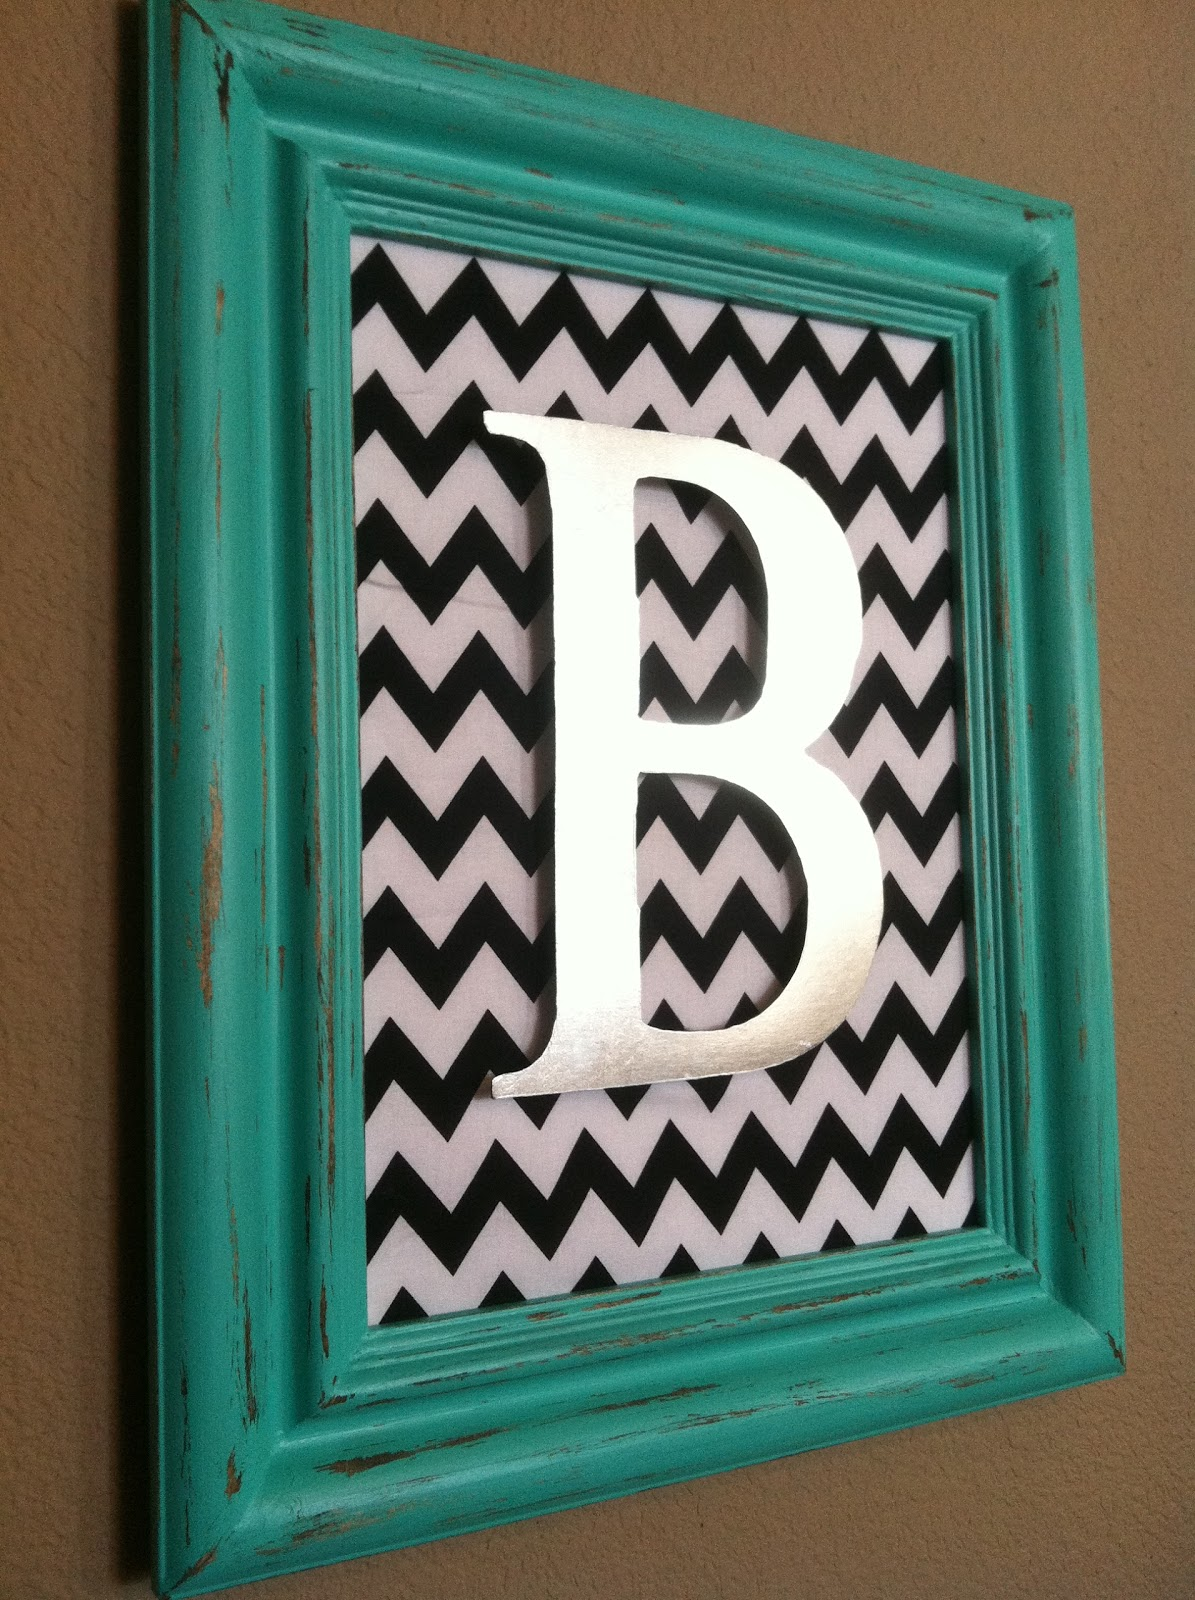 The baeza blog aqua distressed monogram frame vaseline method aqua distressed monogram frame vaseline method jeuxipadfo Choice Image